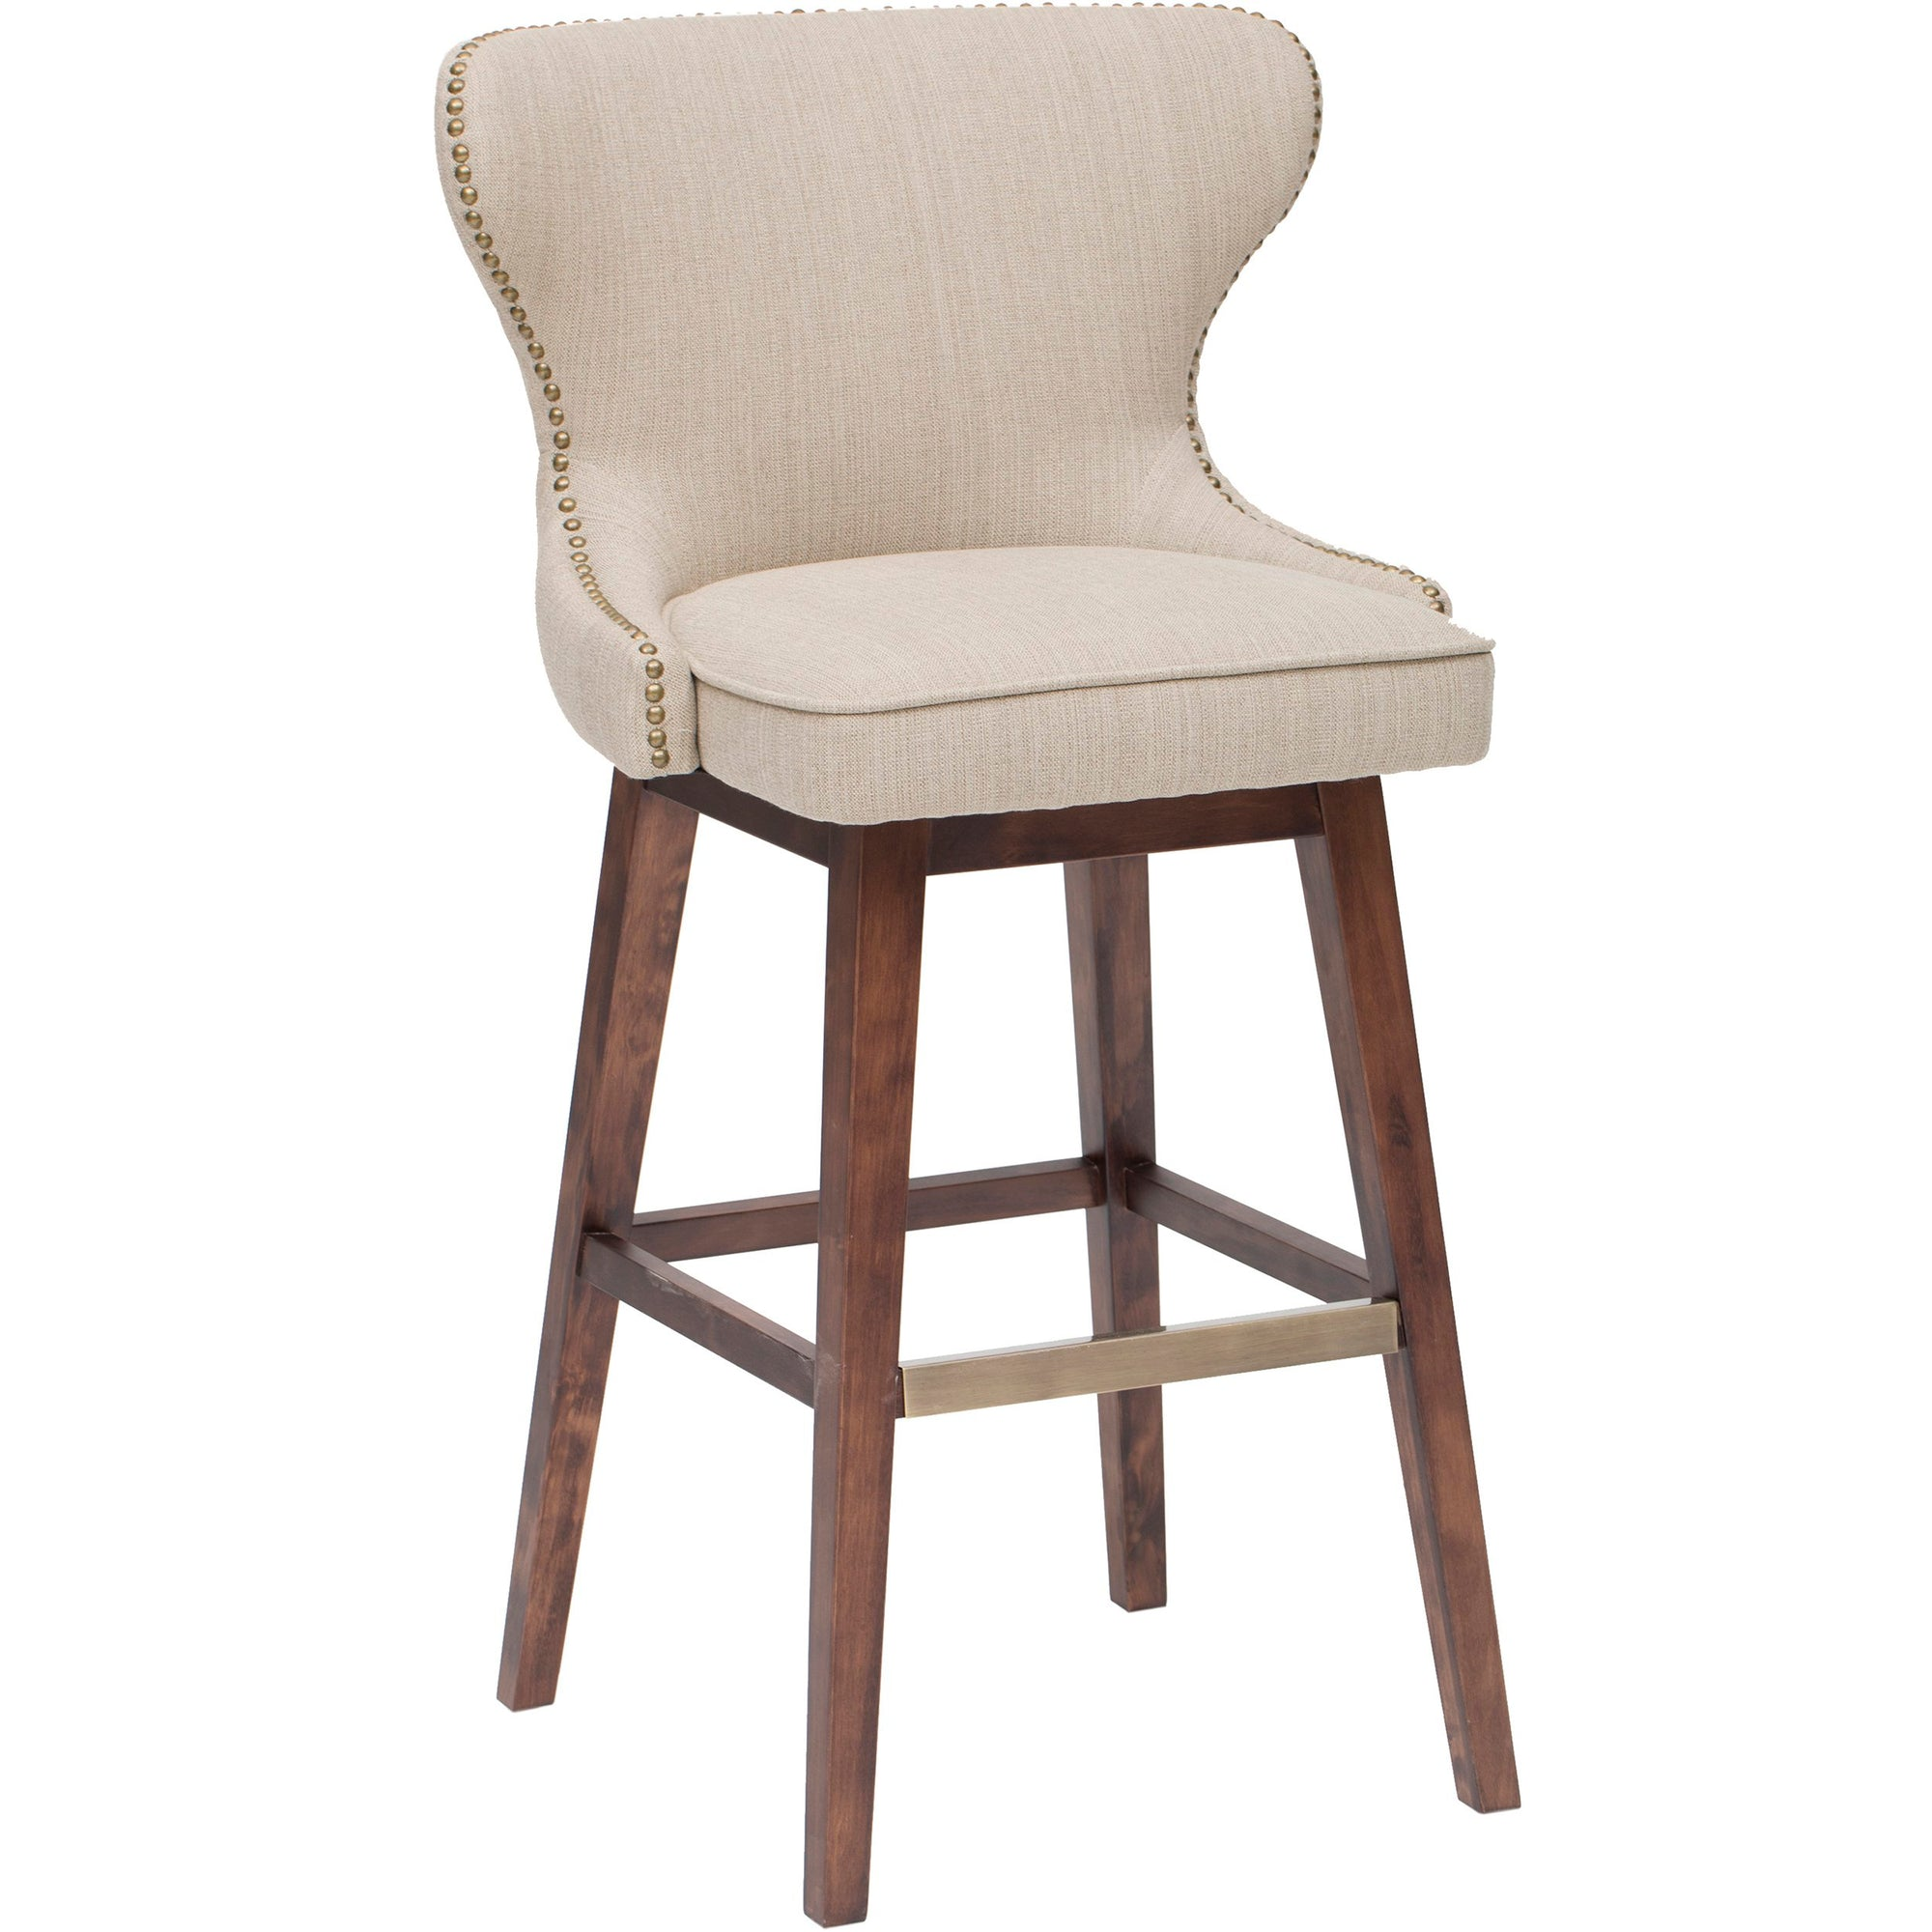 Peachy Julie Swivel Bar Stool High Fashion Home Pabps2019 Chair Design Images Pabps2019Com